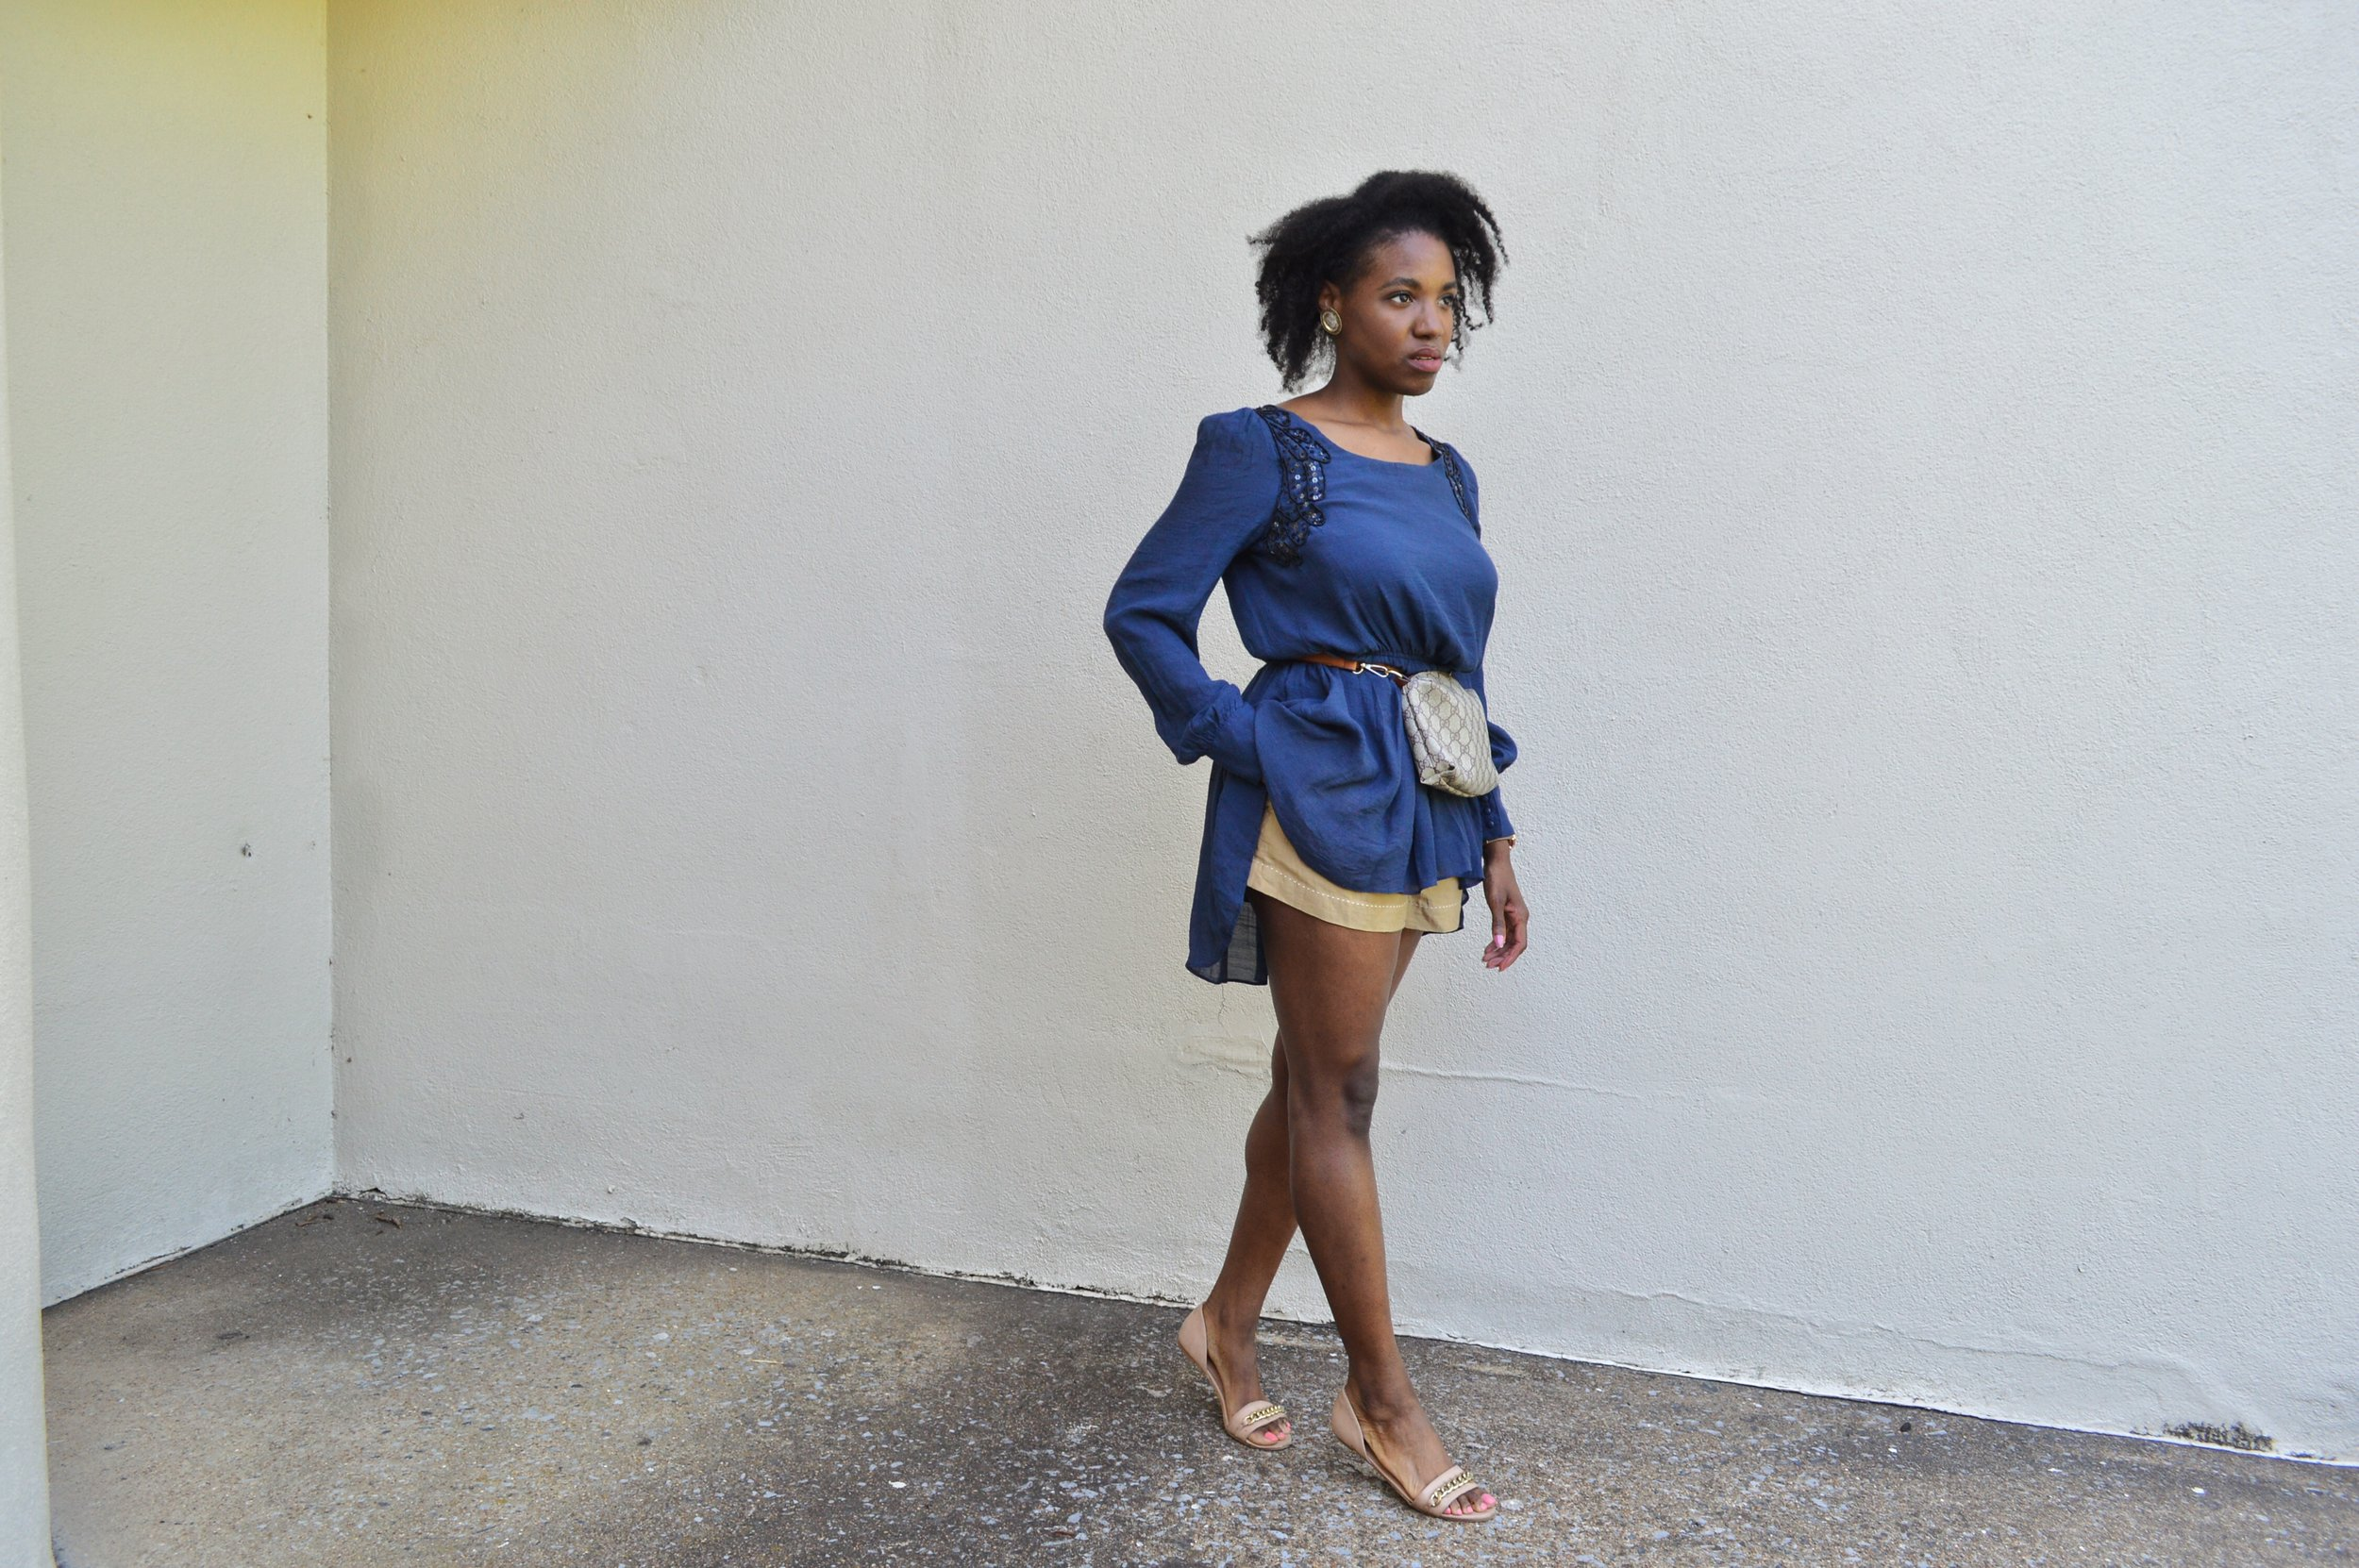 outfit details - shirt: thrifted ( here ); shorts: Anthropologie ( here ); shoes: H&M ( here ); purse: Gucci ( here )